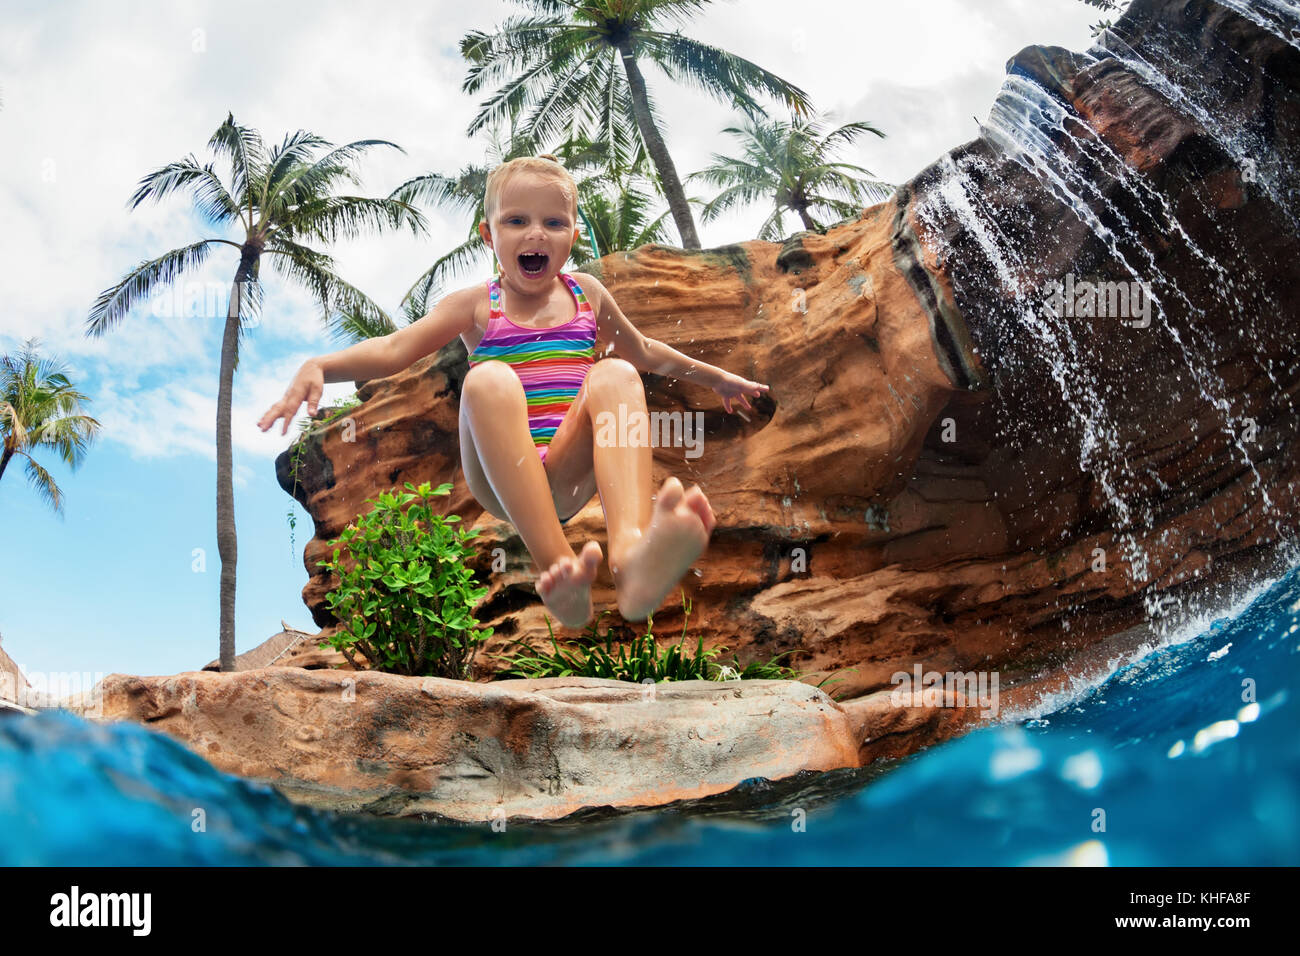 Funny child learn to swim with fun. Girl jumping high with splashes into water pool under waterfall. Healthy lifestyle, - Stock Image